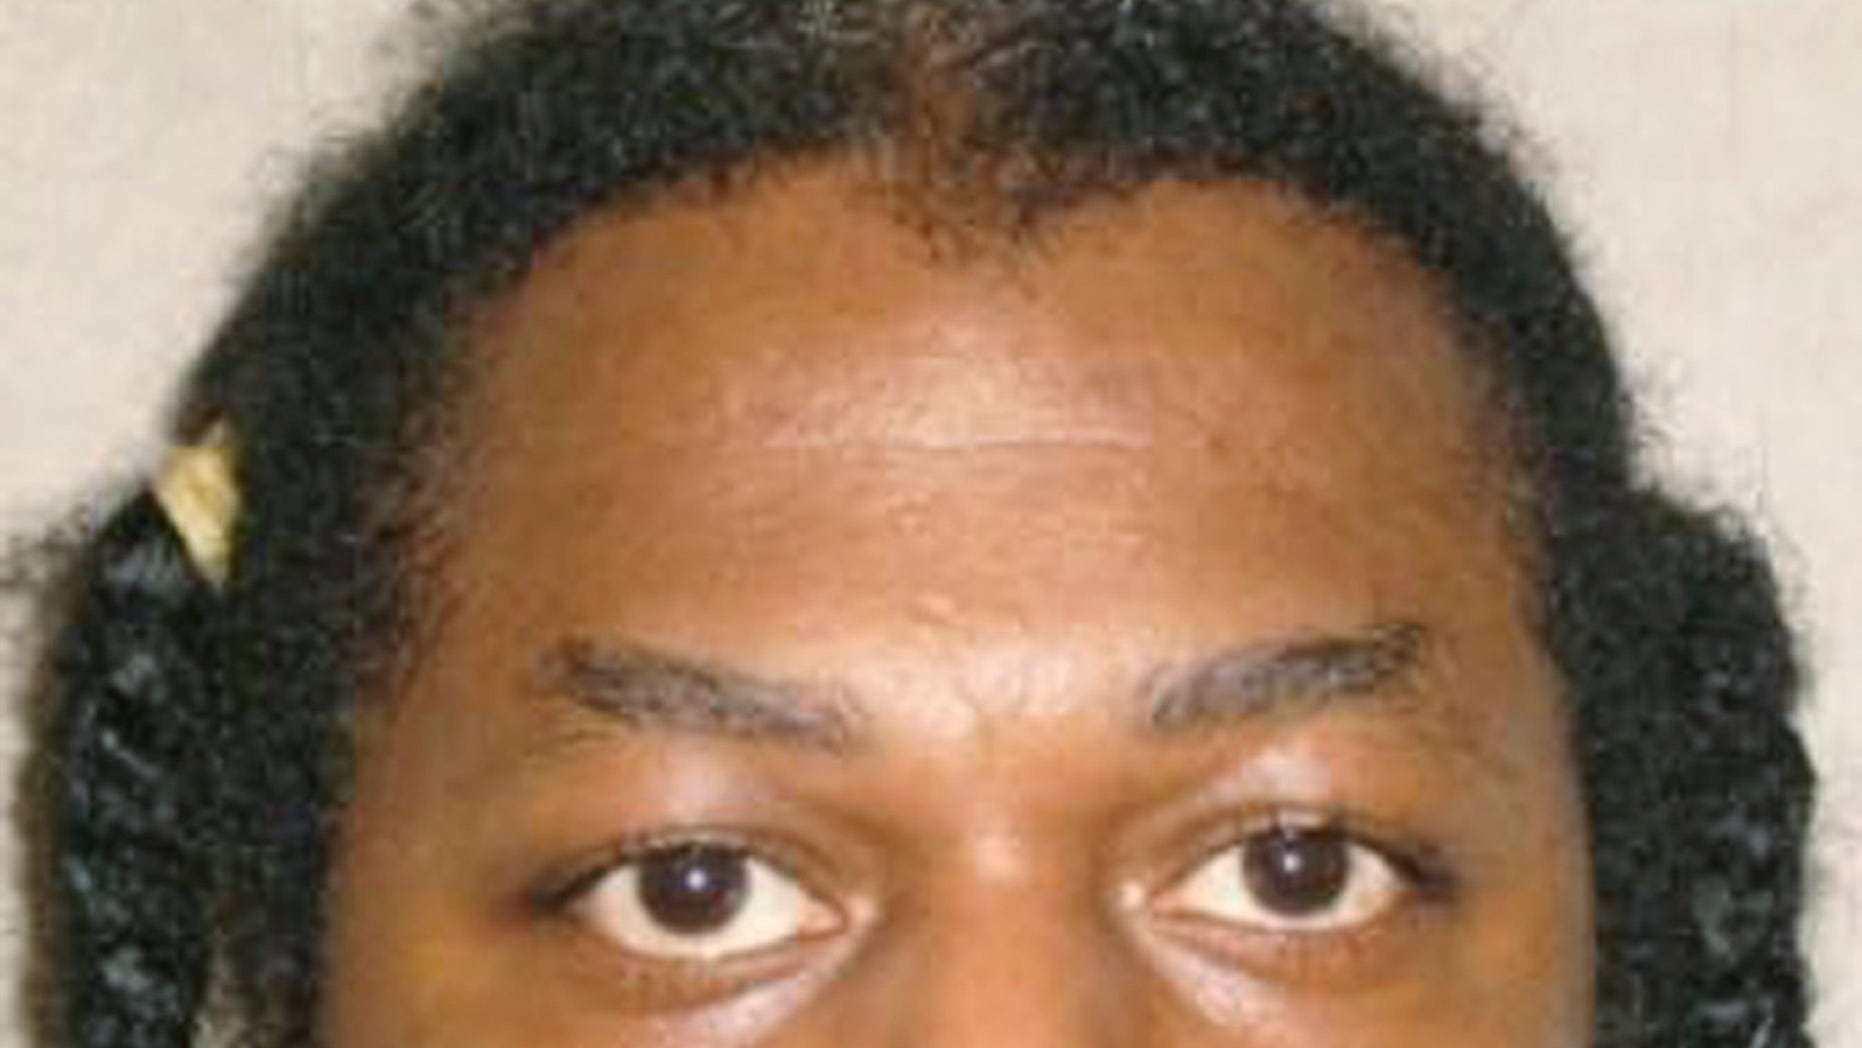 FILE - This June 29, 2011, photo provided by the Oklahoma Department of Corrections shows Charles Warner, who was executed on Jan. 15, 2015 for the 1997 killing of his roommate's 11-month-old daughter.  The Oklahoman reported Thursday, Oct. 8, 2015 that corrections officials used potassium acetate, not potassium chloride, as required under the state's protocol, to execute Warner.(AP Photo/Oklahoma Department of Corrections, File)